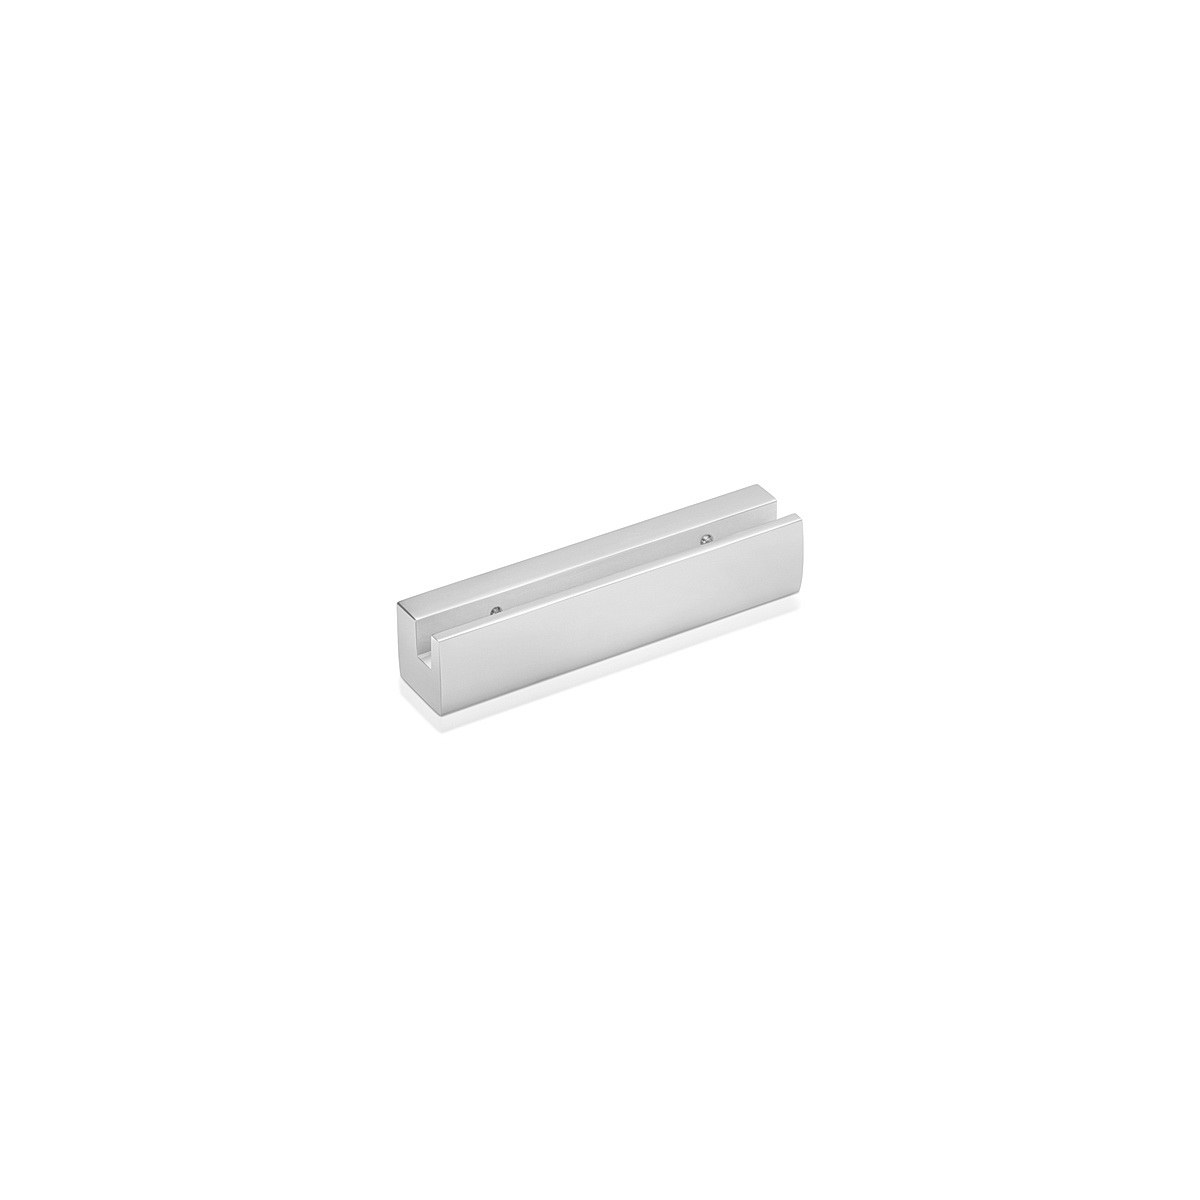 Sign Clamp in 4 3/4'' (120 mm) length  X 1'' (25.4 mm) wide - Satin